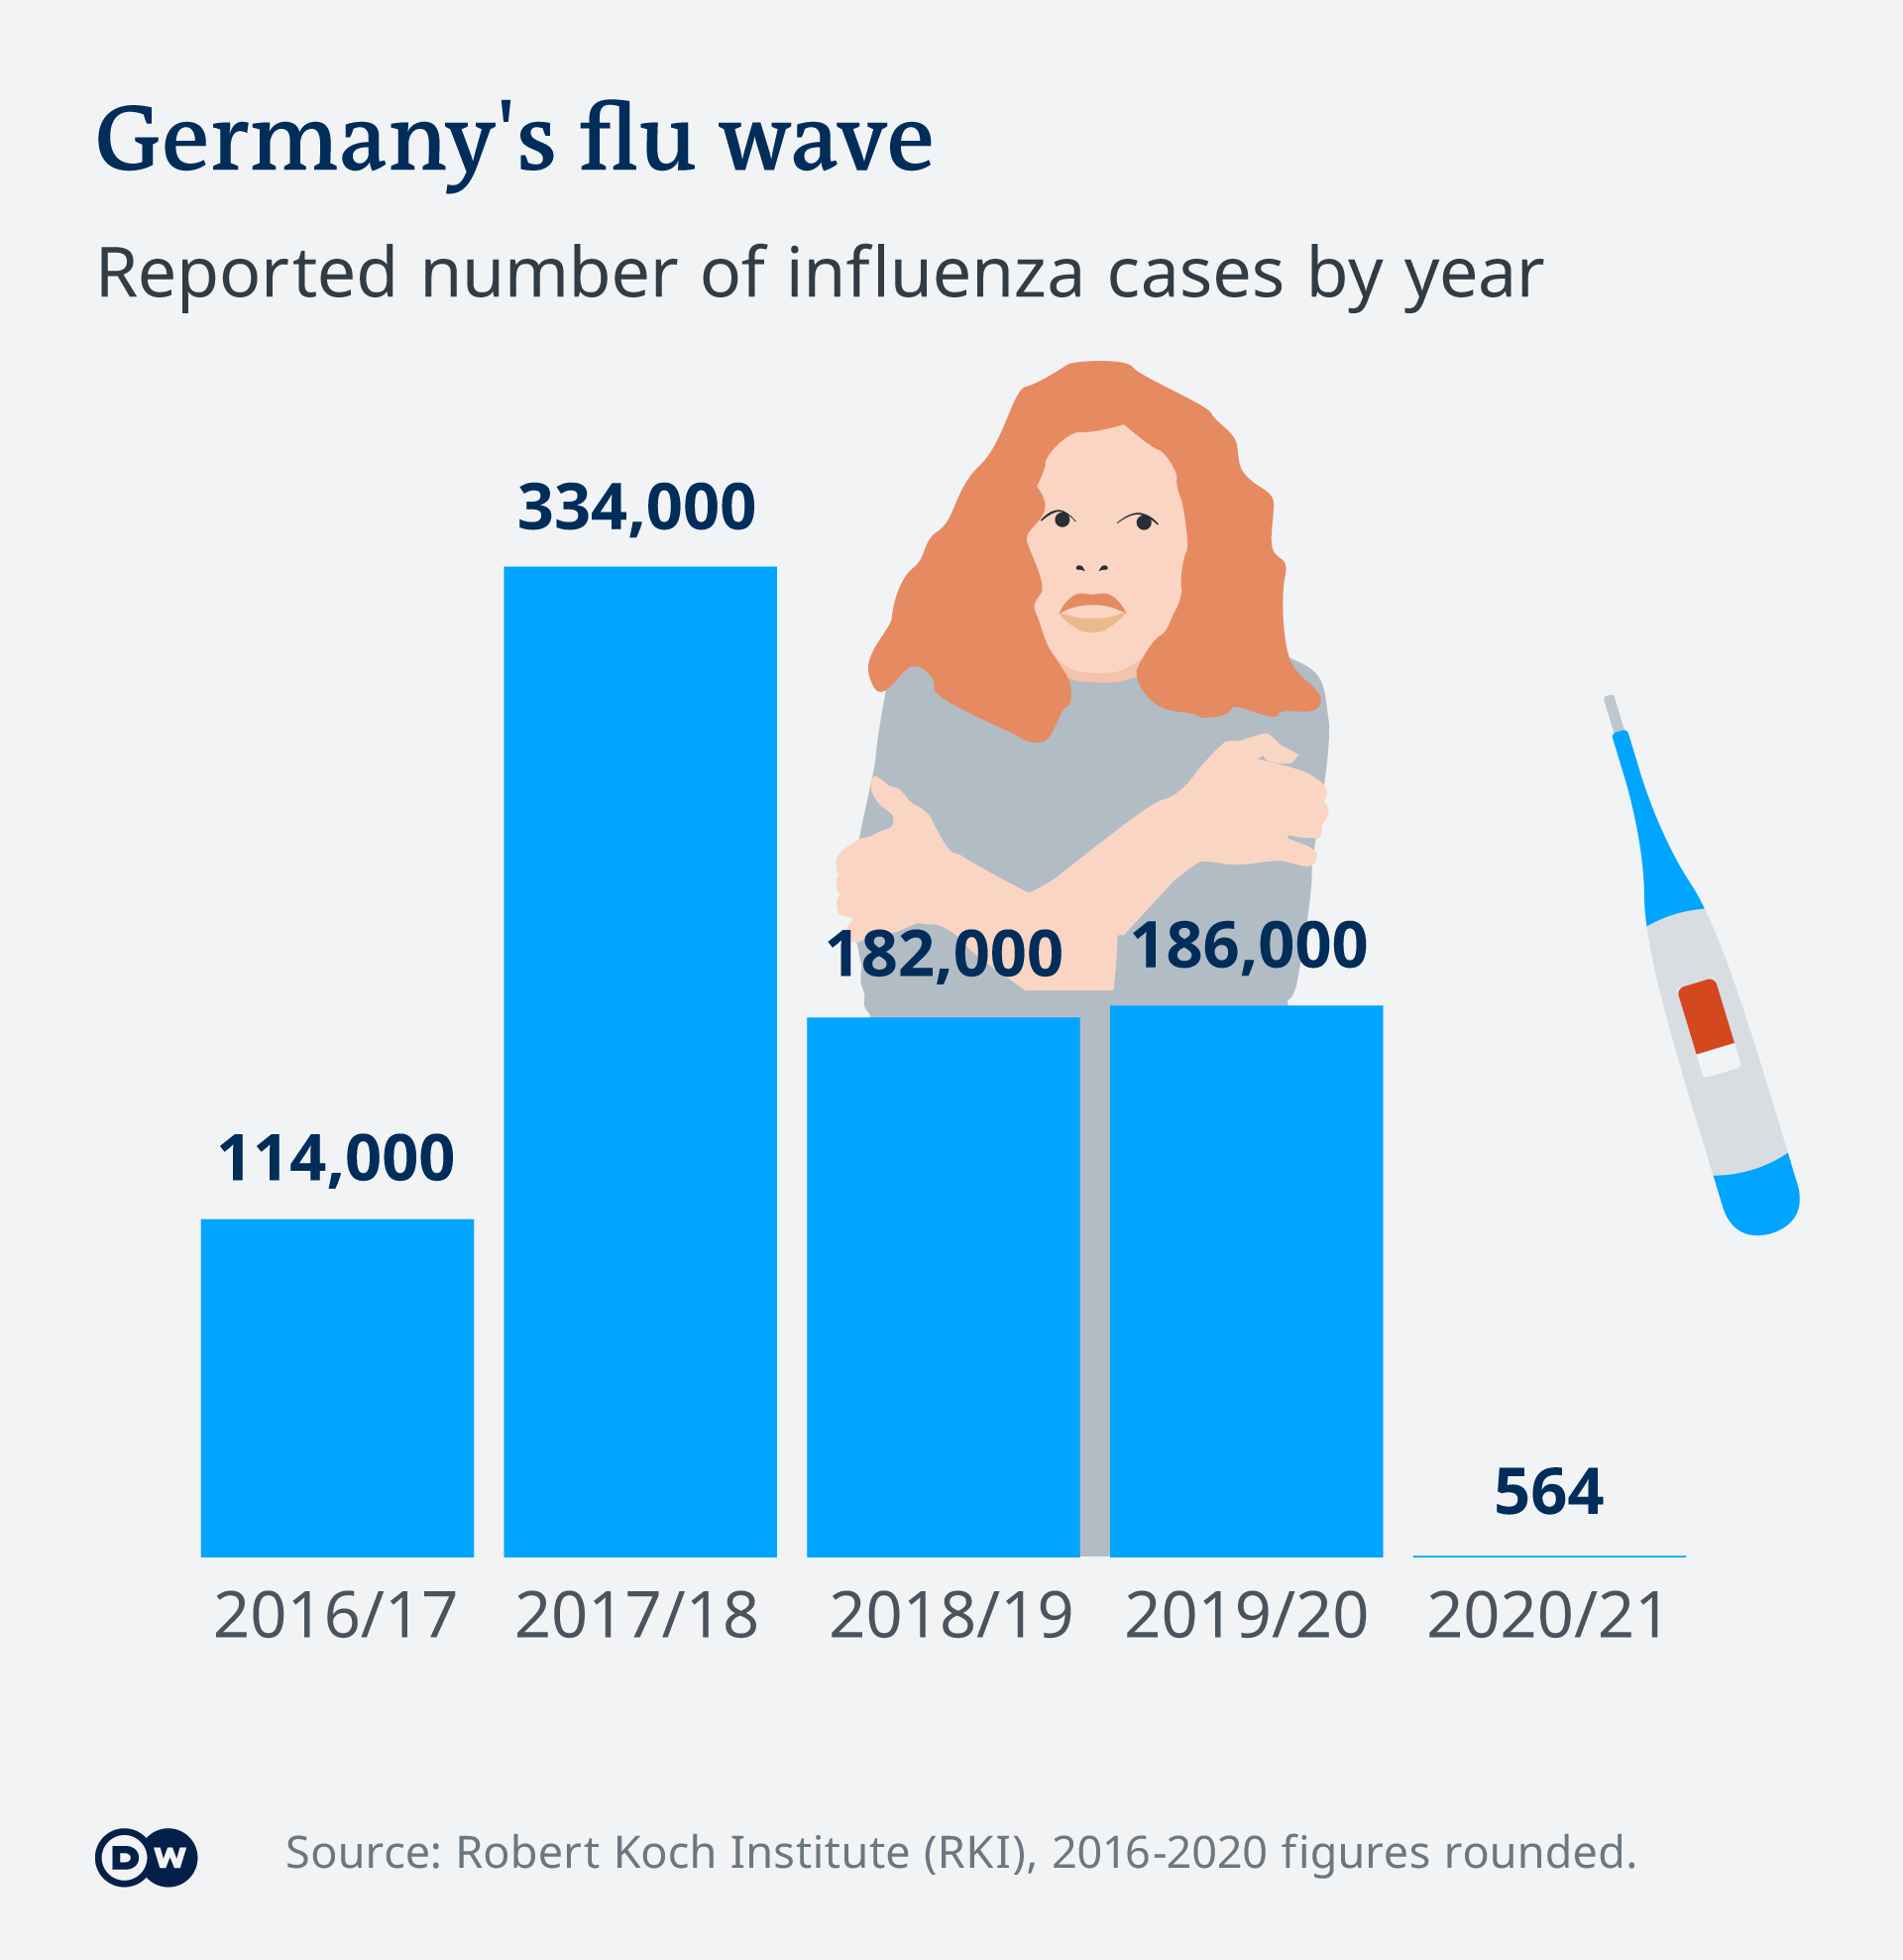 Germany's flu wave infographic